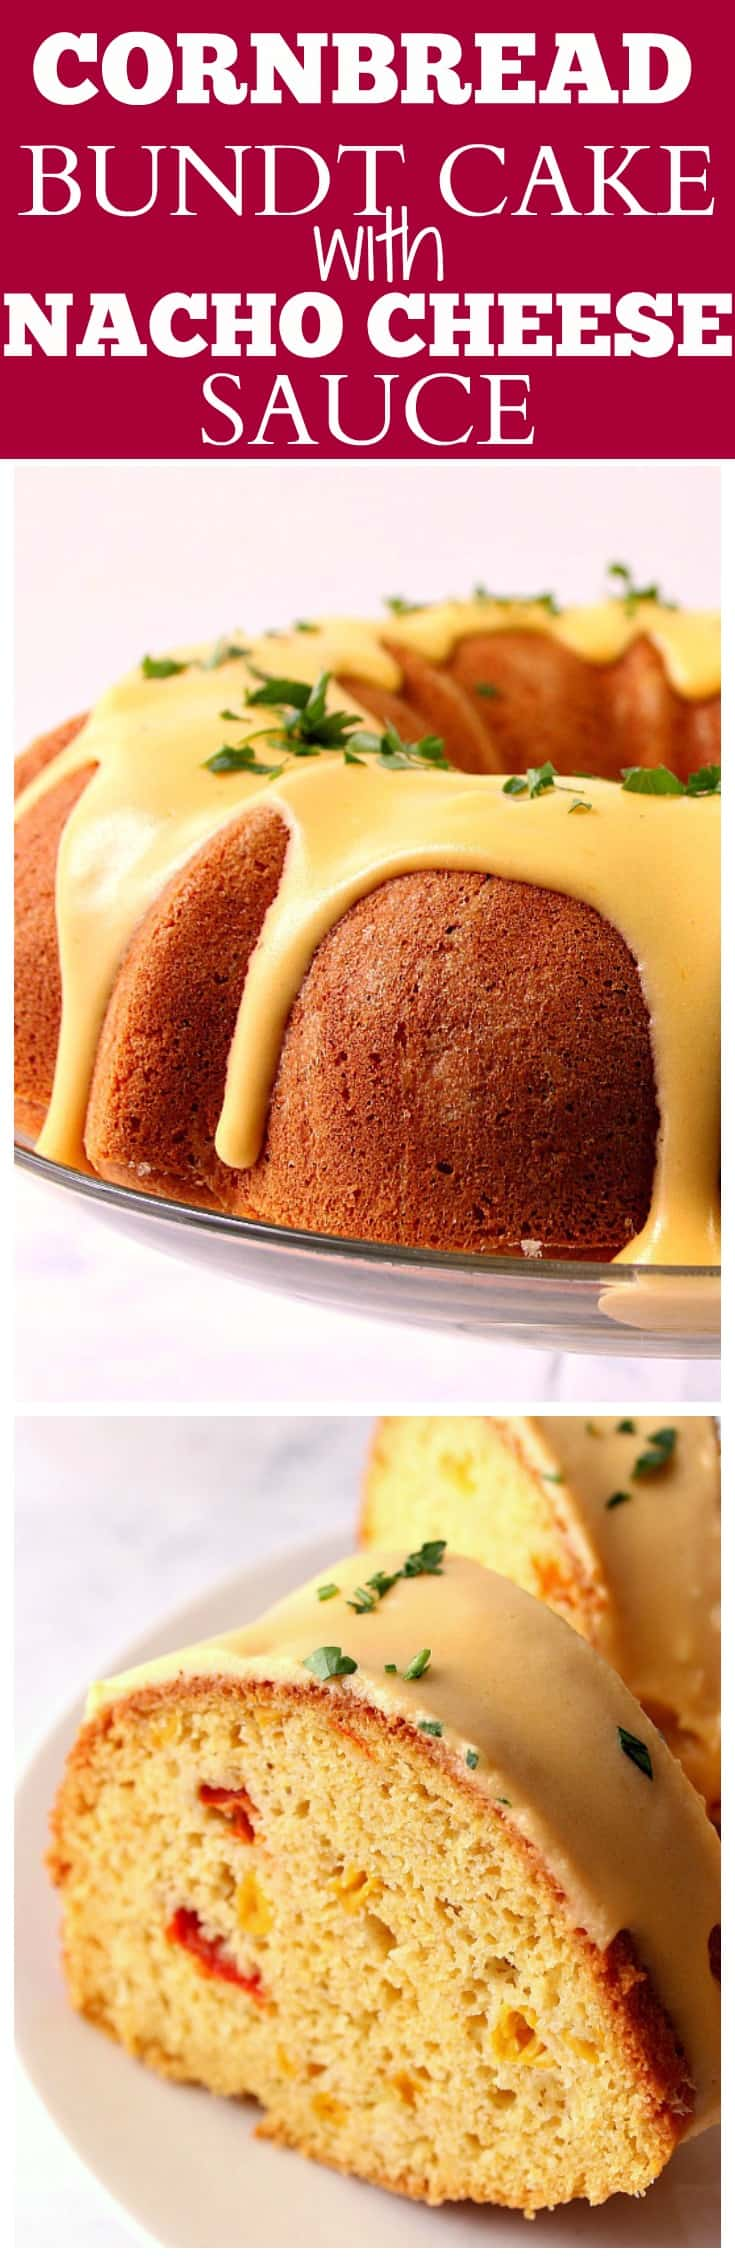 new Cornbread Bundt Cake with Nacho Cheese Sauce Recipe Cornbread Bundt Cake with Nacho Cheese Sauce Recipe